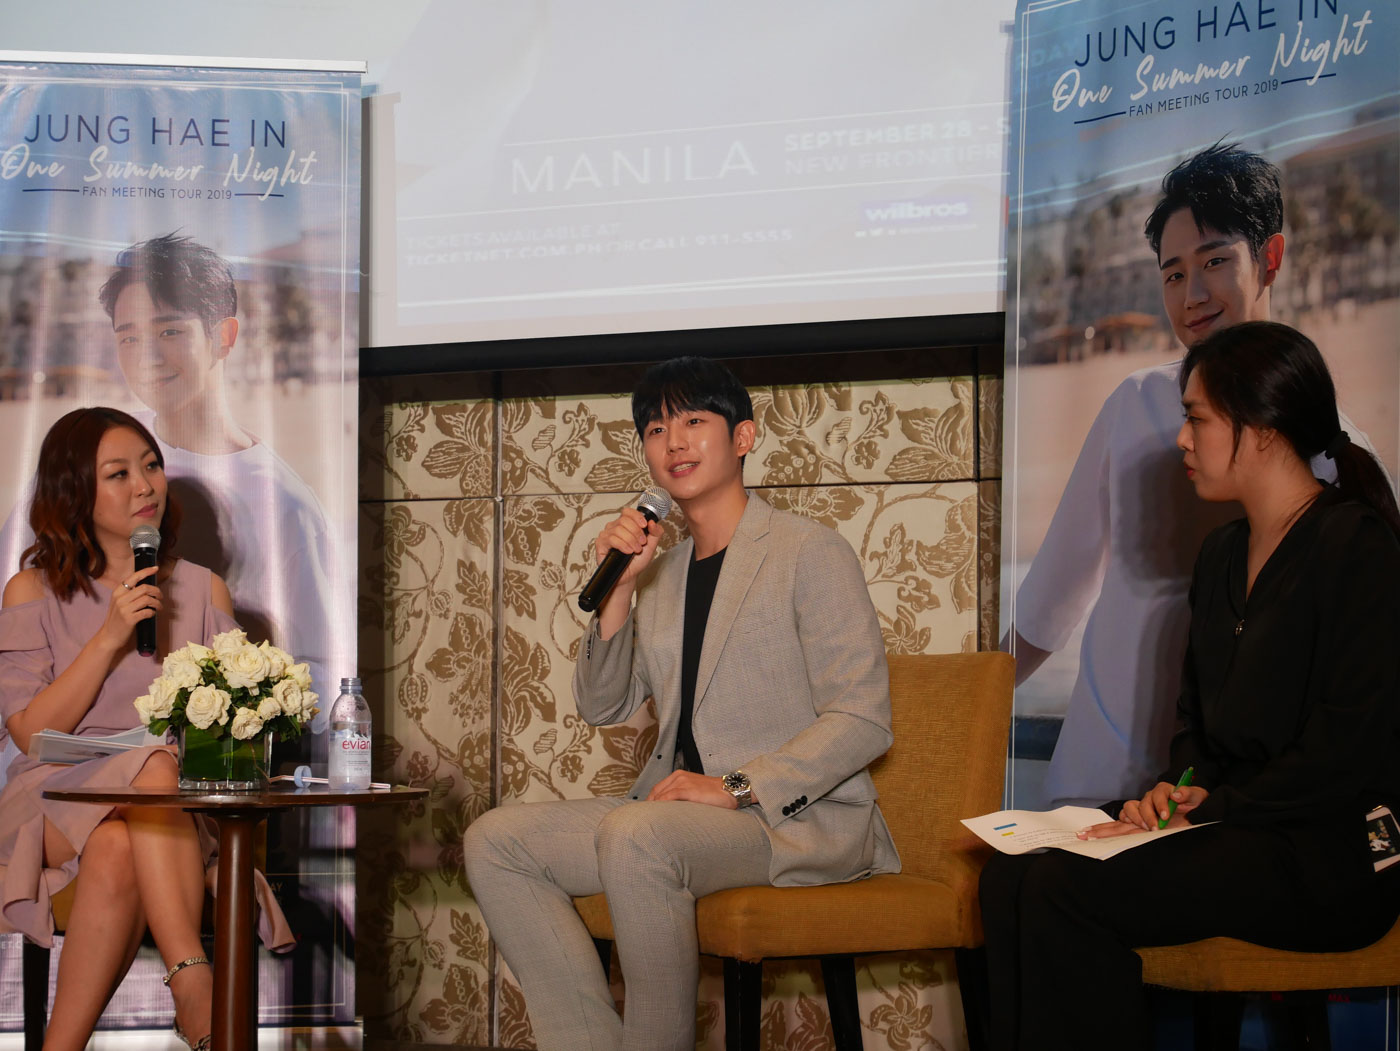 RELUCTANT HALLYU STAR. Korean actor Jung Hae-in answers questions at his press conference on Friday, September 27, for his fan meet 'One Summer Night.' Photo by Nikko Dizon/Rappler